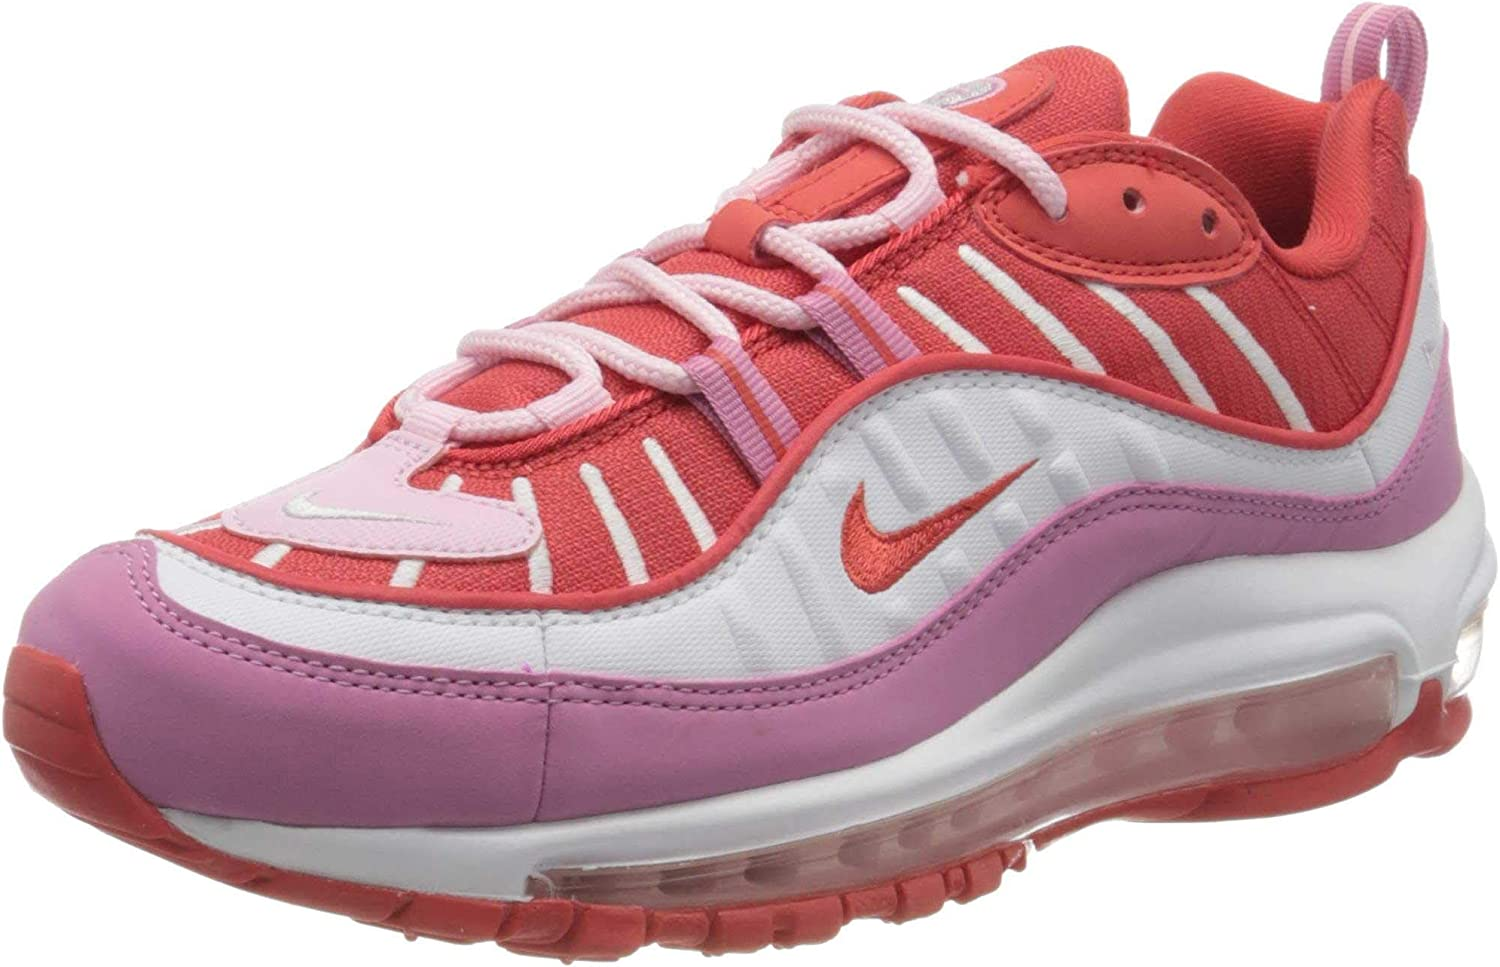 Nike Womens Air Max 98 Running Trainers Ci3709 Sneakers Shoes